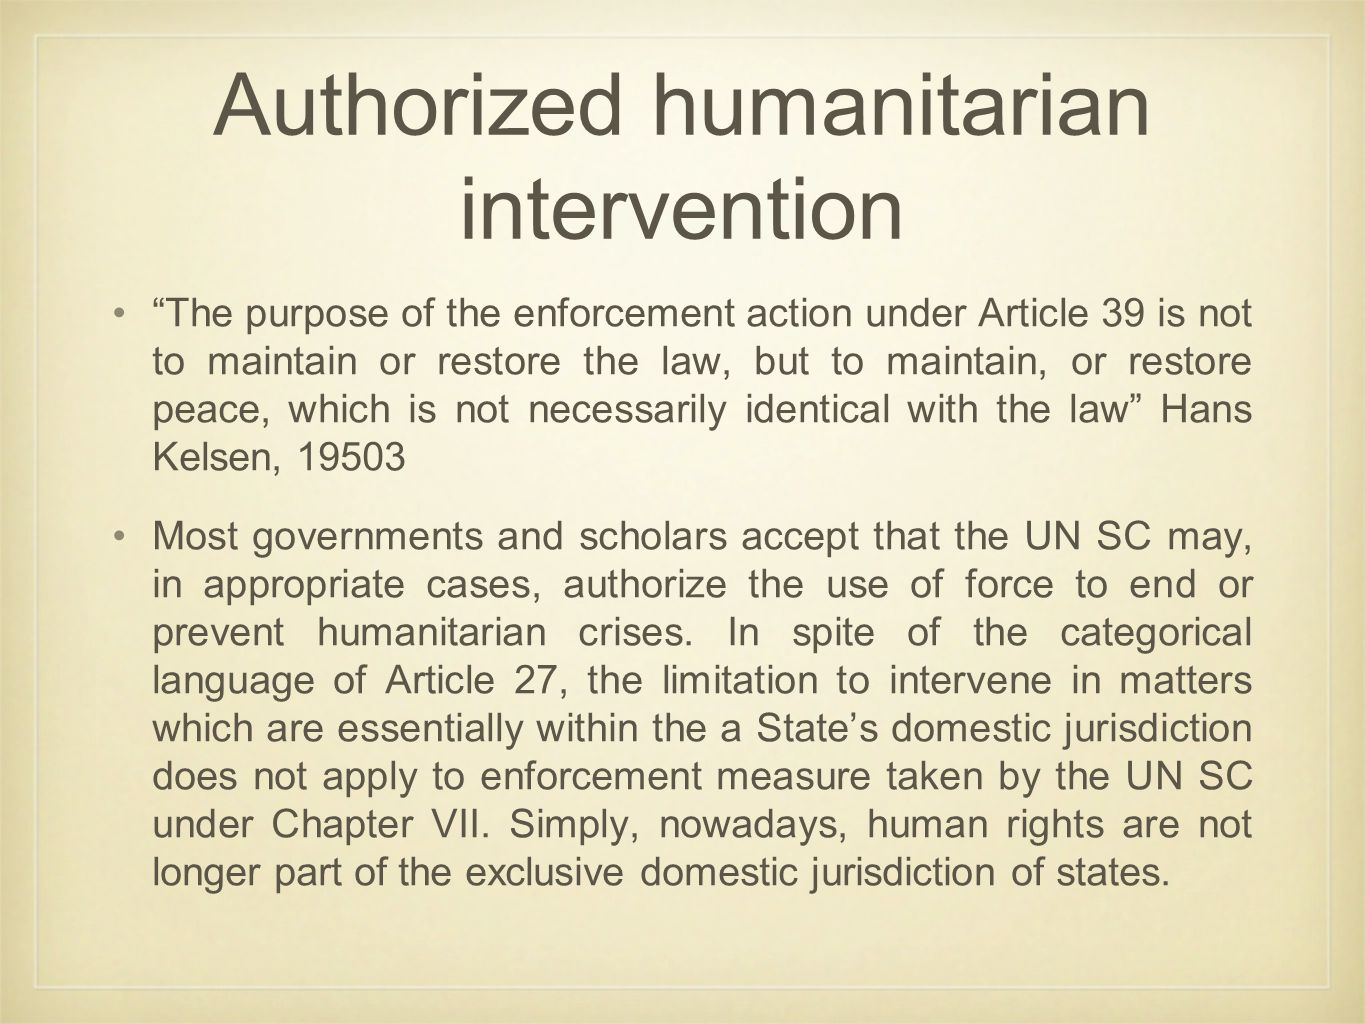 Authorized humanitarian intervention The purpose of the enforcement action under Article 39 is not to maintain or restore the law, but to maintain, or restore peace, which is not necessarily identical with the law Hans Kelsen, 19503 Most governments and scholars accept that the UN SC may, in appropriate cases, authorize the use of force to end or prevent humanitarian crises.